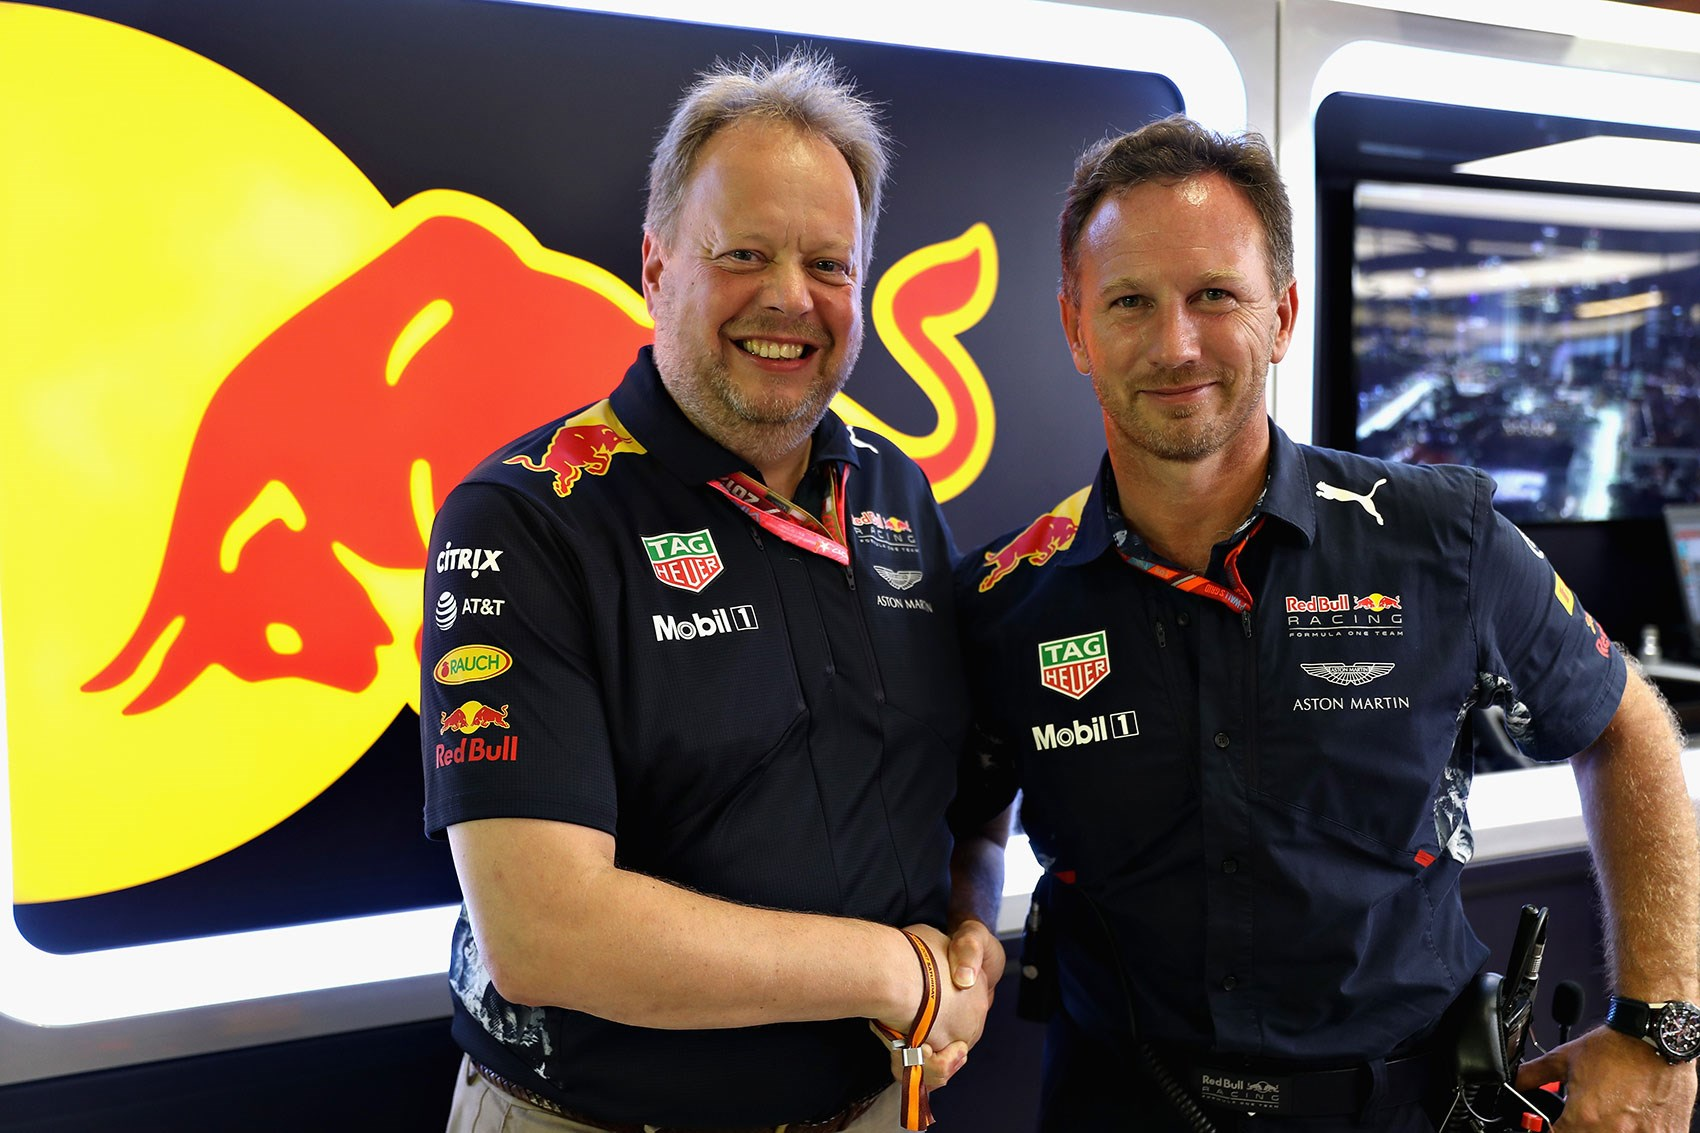 Red Bull Racing confirms Aston Martin title sponsorship for 2018